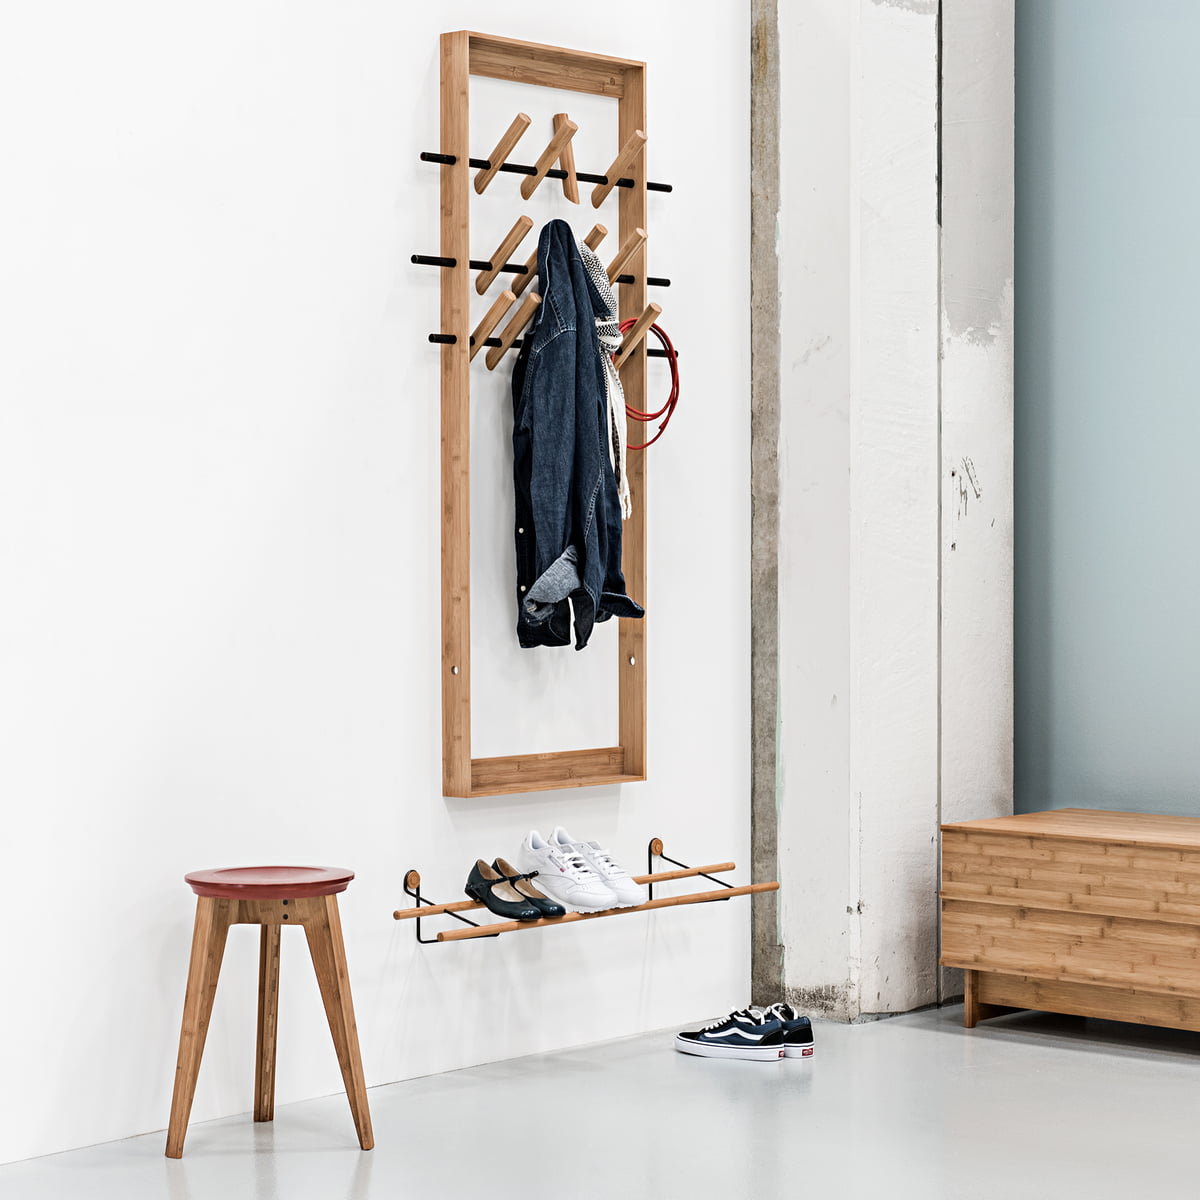 Shoe rack von we do wood kaufen connox shop for Garderobenhaken design